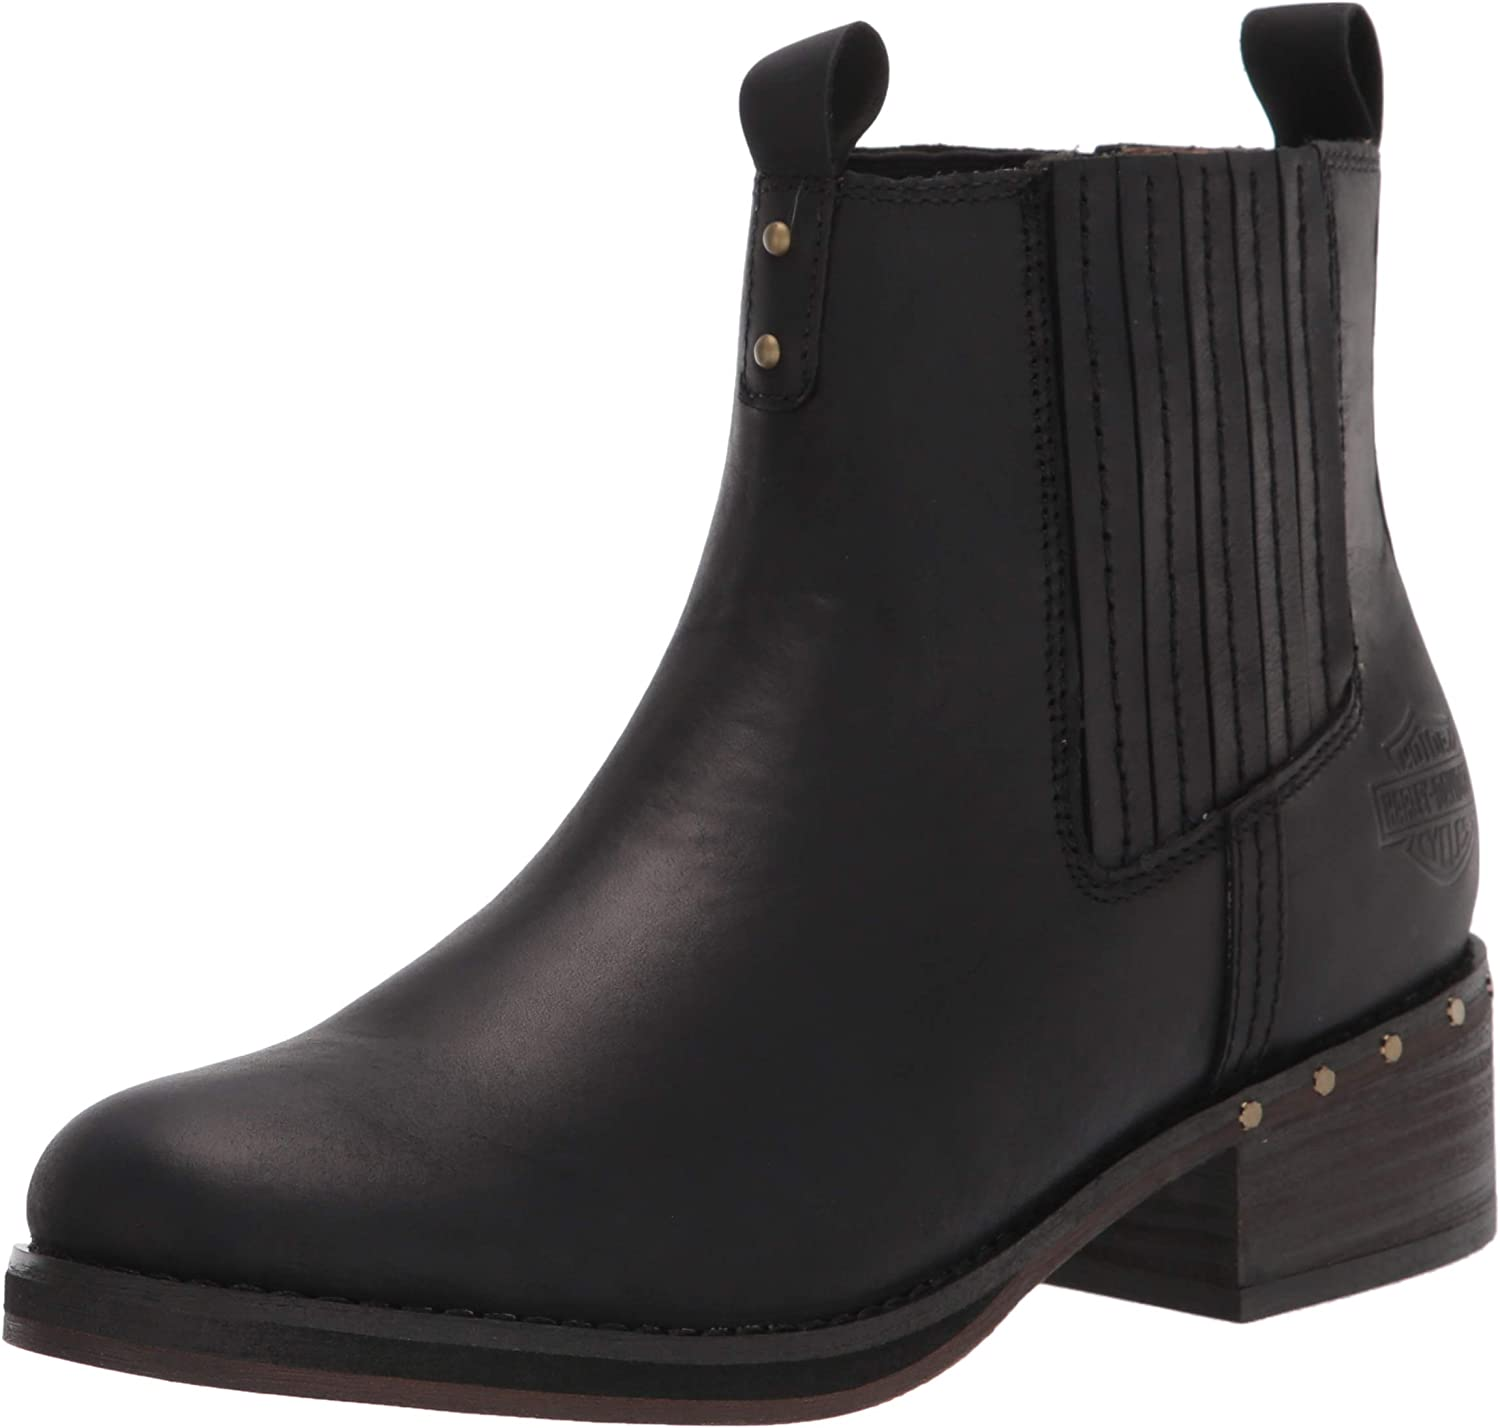 HARLEY-DAVIDSON FOOTWEAR Women's Brittany Pull on Motorcycle Boot